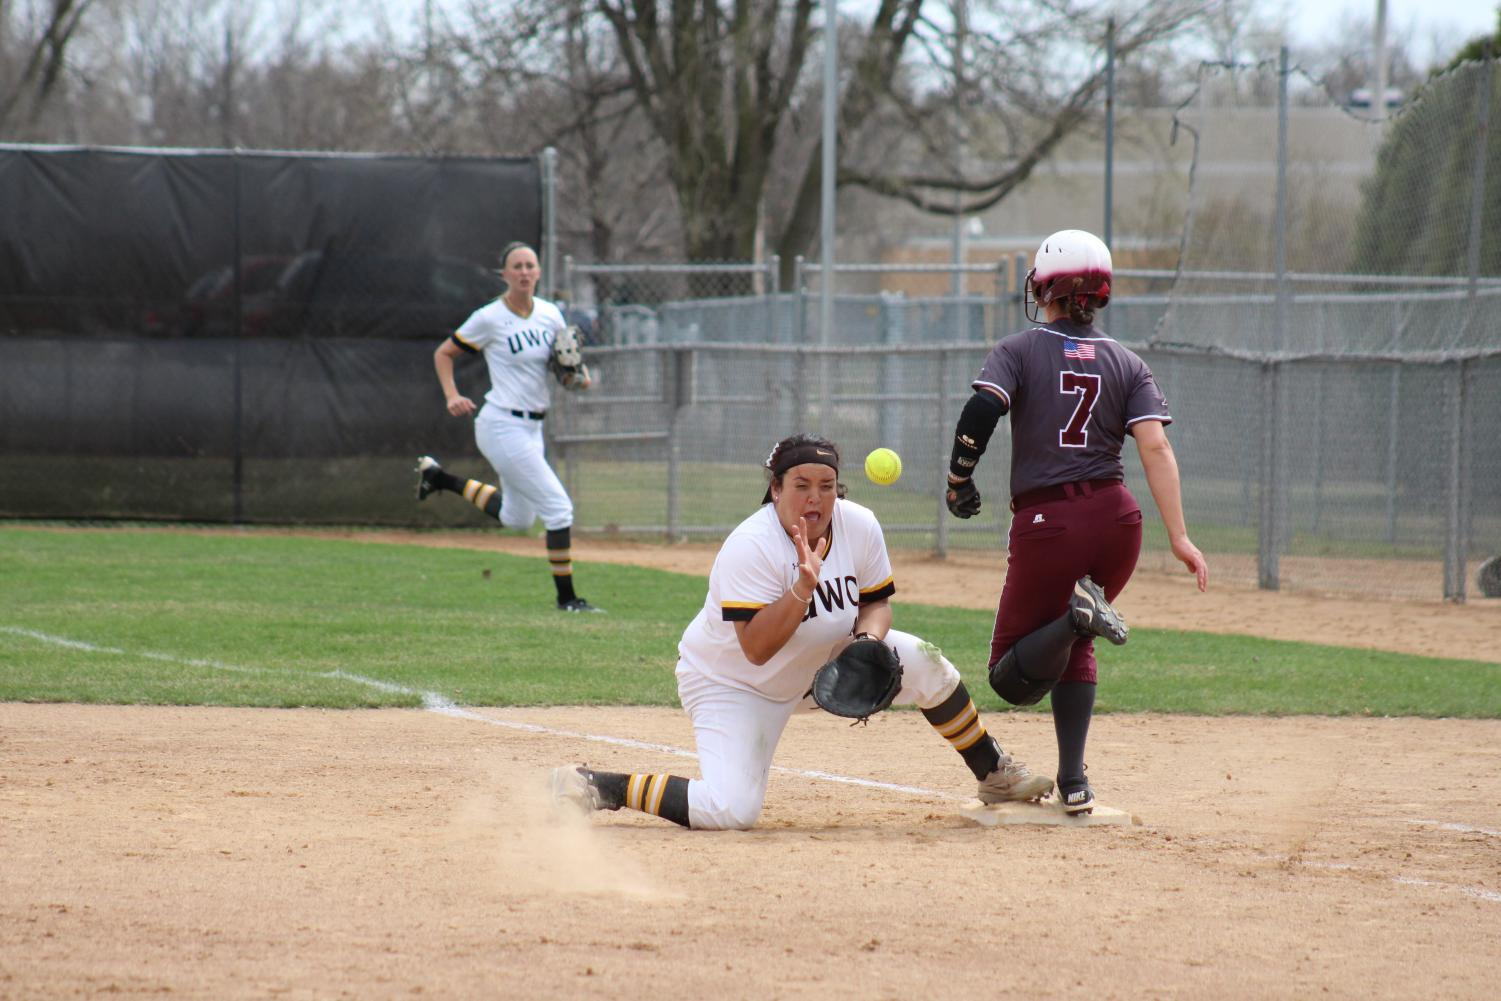 Oshkosh junior first baseman Kaitlyn Krol attempts to field a throw in Tuesday's sweep against UW-La Crosse. In 33 games this season, Krol has 32 hits, including six doubles, one triple and two home runs, and only two strikeouts.